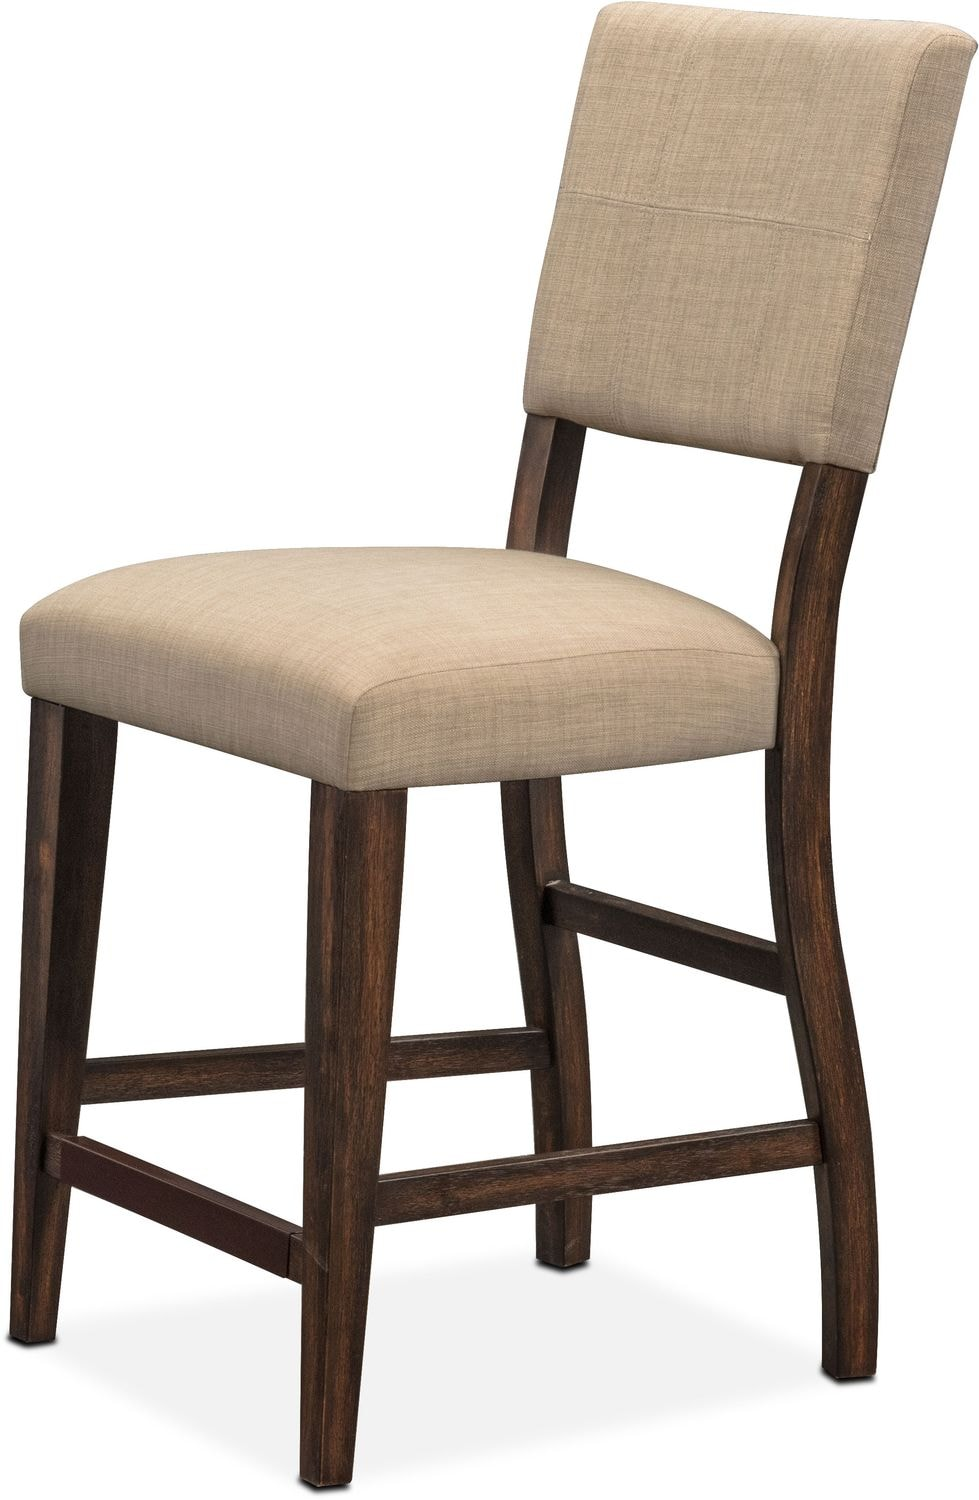 Tribeca Counter Height Upholstered Side Chair Tobacco